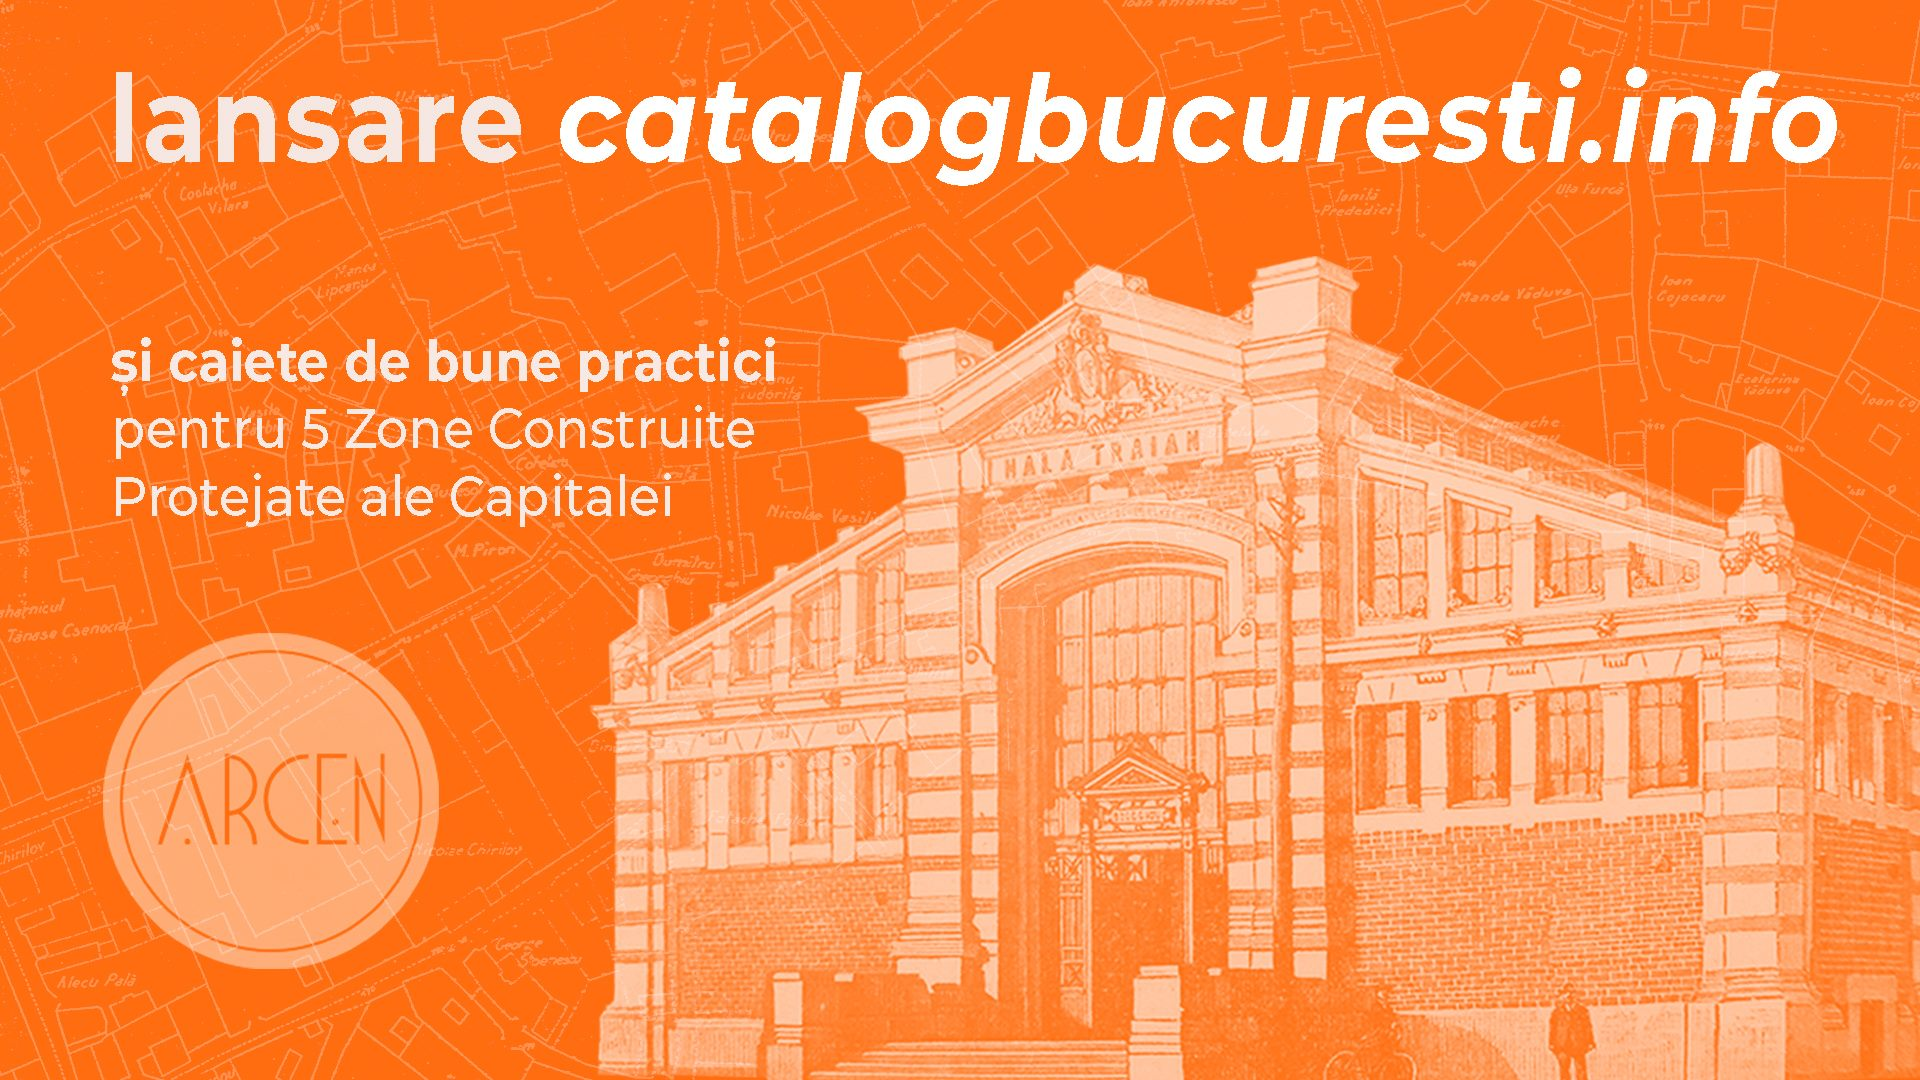 catalogbucuresti